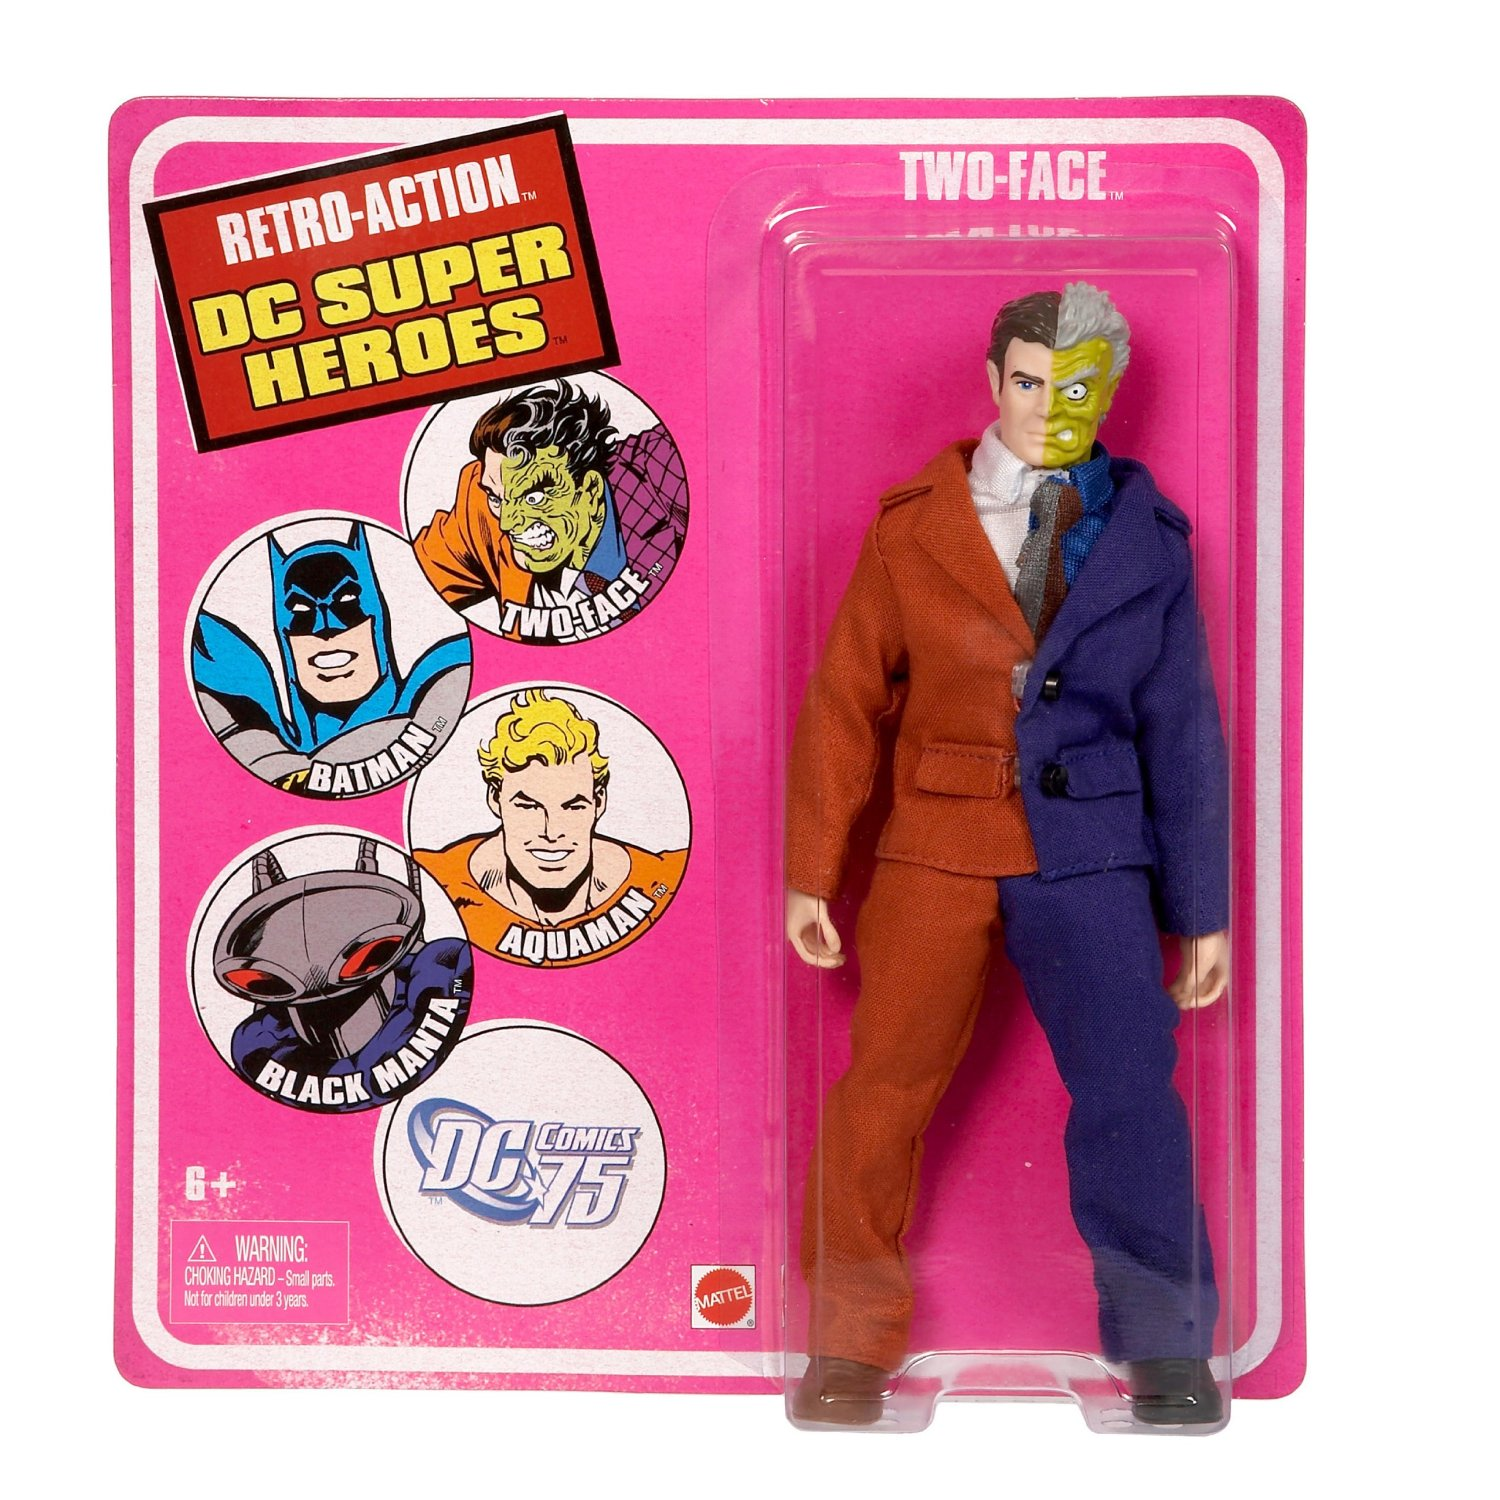 Two Face Retro Action DC Super Heroes Figure